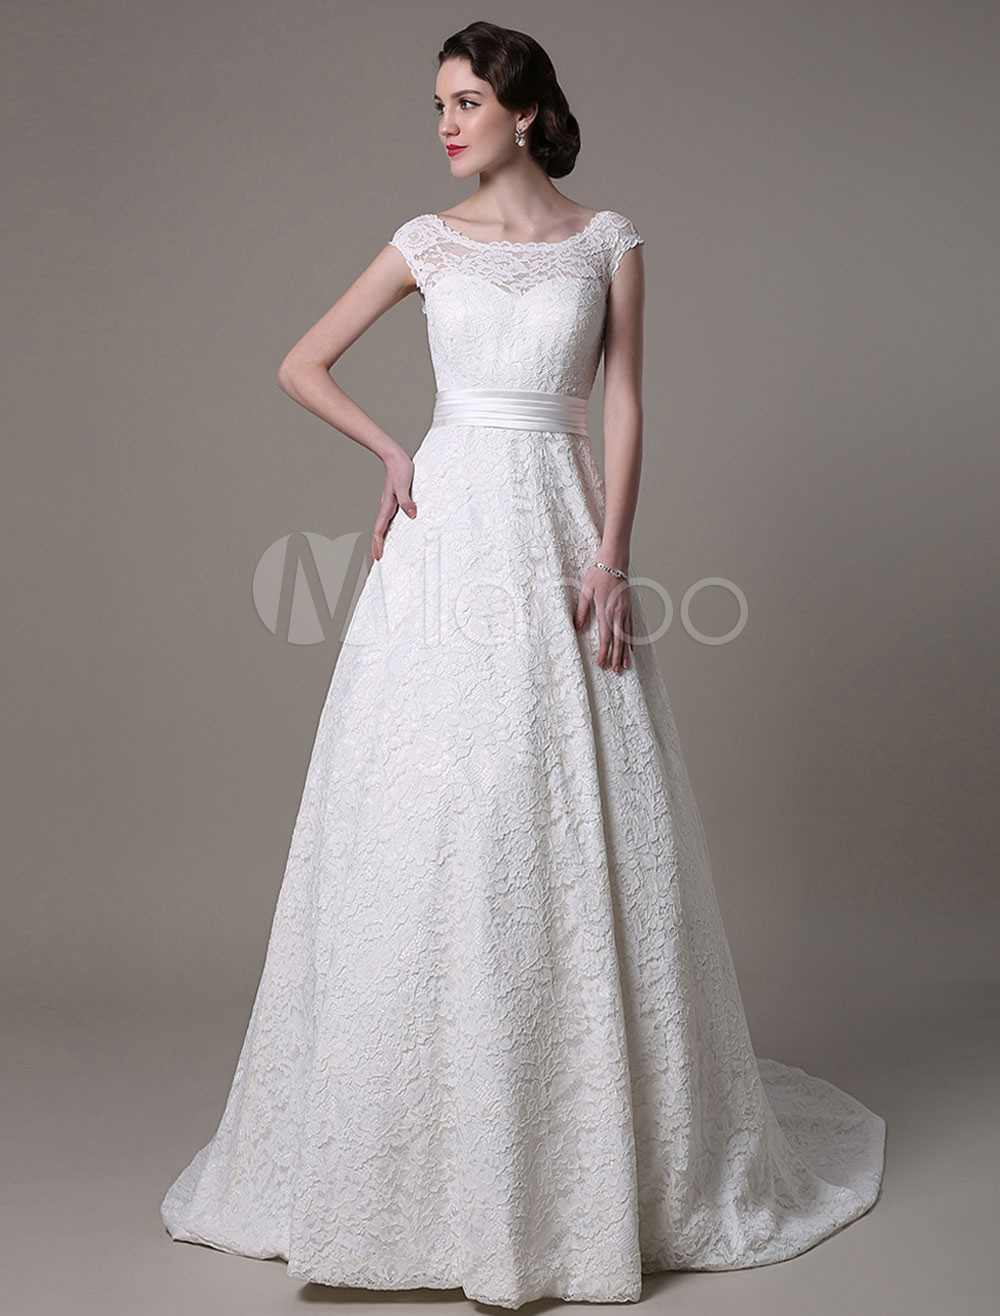 Ivory Wedding Dress Bateau Neck Backless Lace Tulle Wedding Gown Milanoo